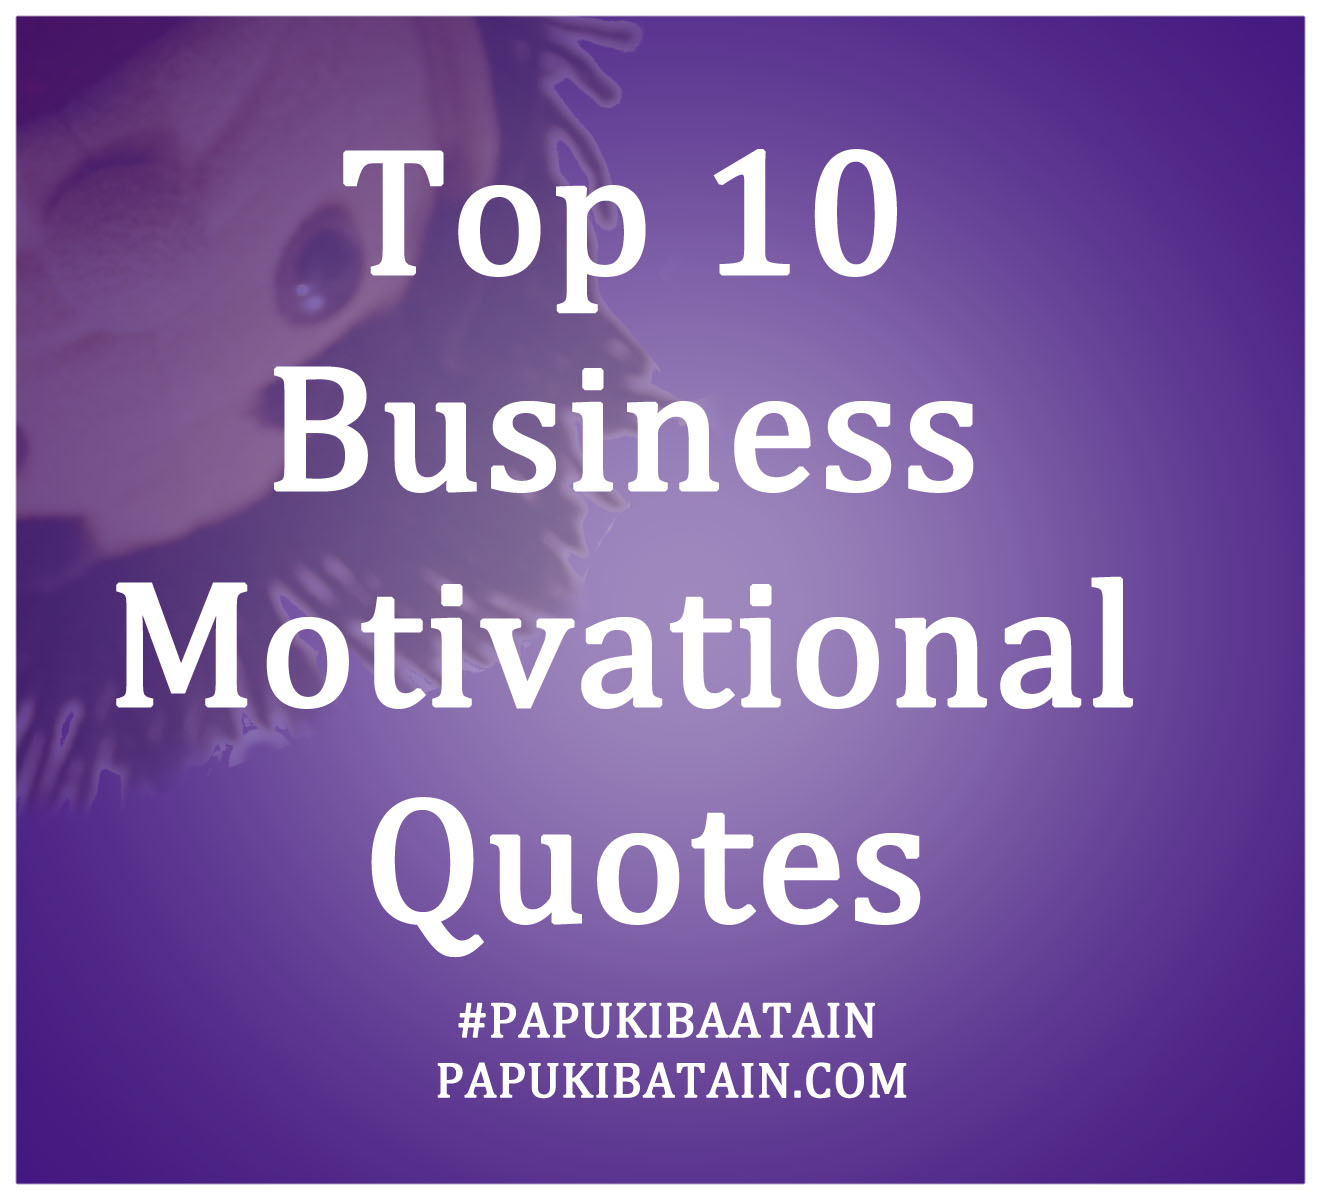 Top 10 Business Quotes. QuotesGram